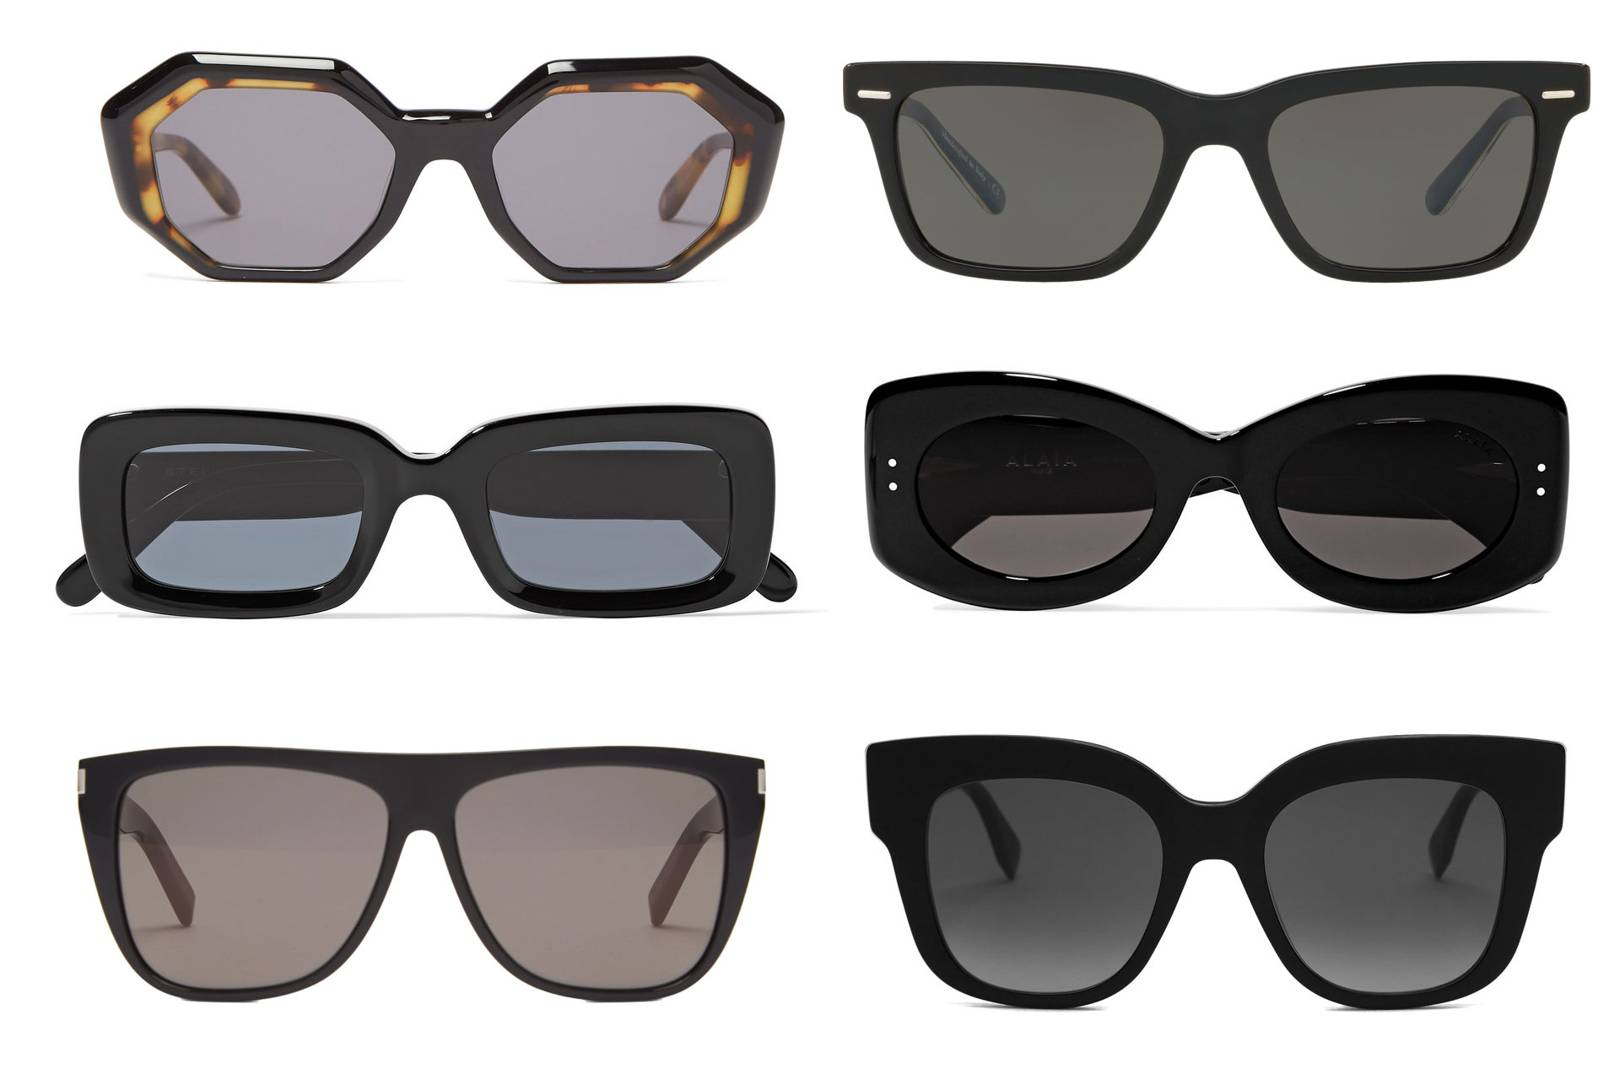 e0148855f0a3 The Best Sunglasses To Equip You For The Months Ahead